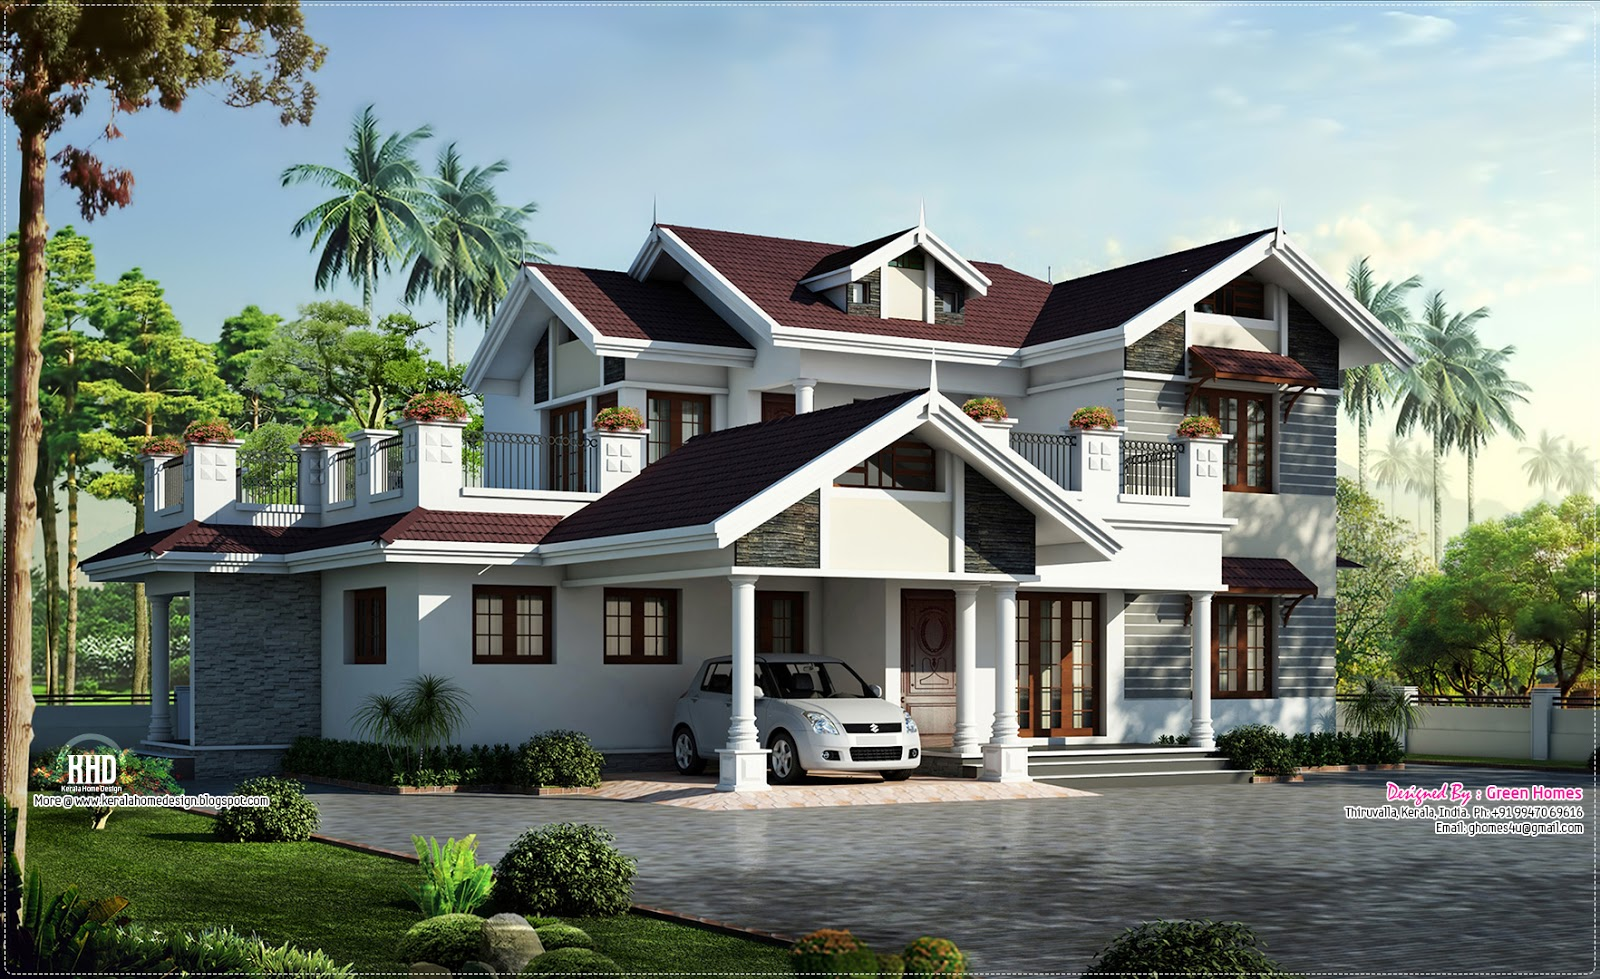 Beautiful villa design in 2750 kerala home design and floor plans - Kerala exterior model homes ...